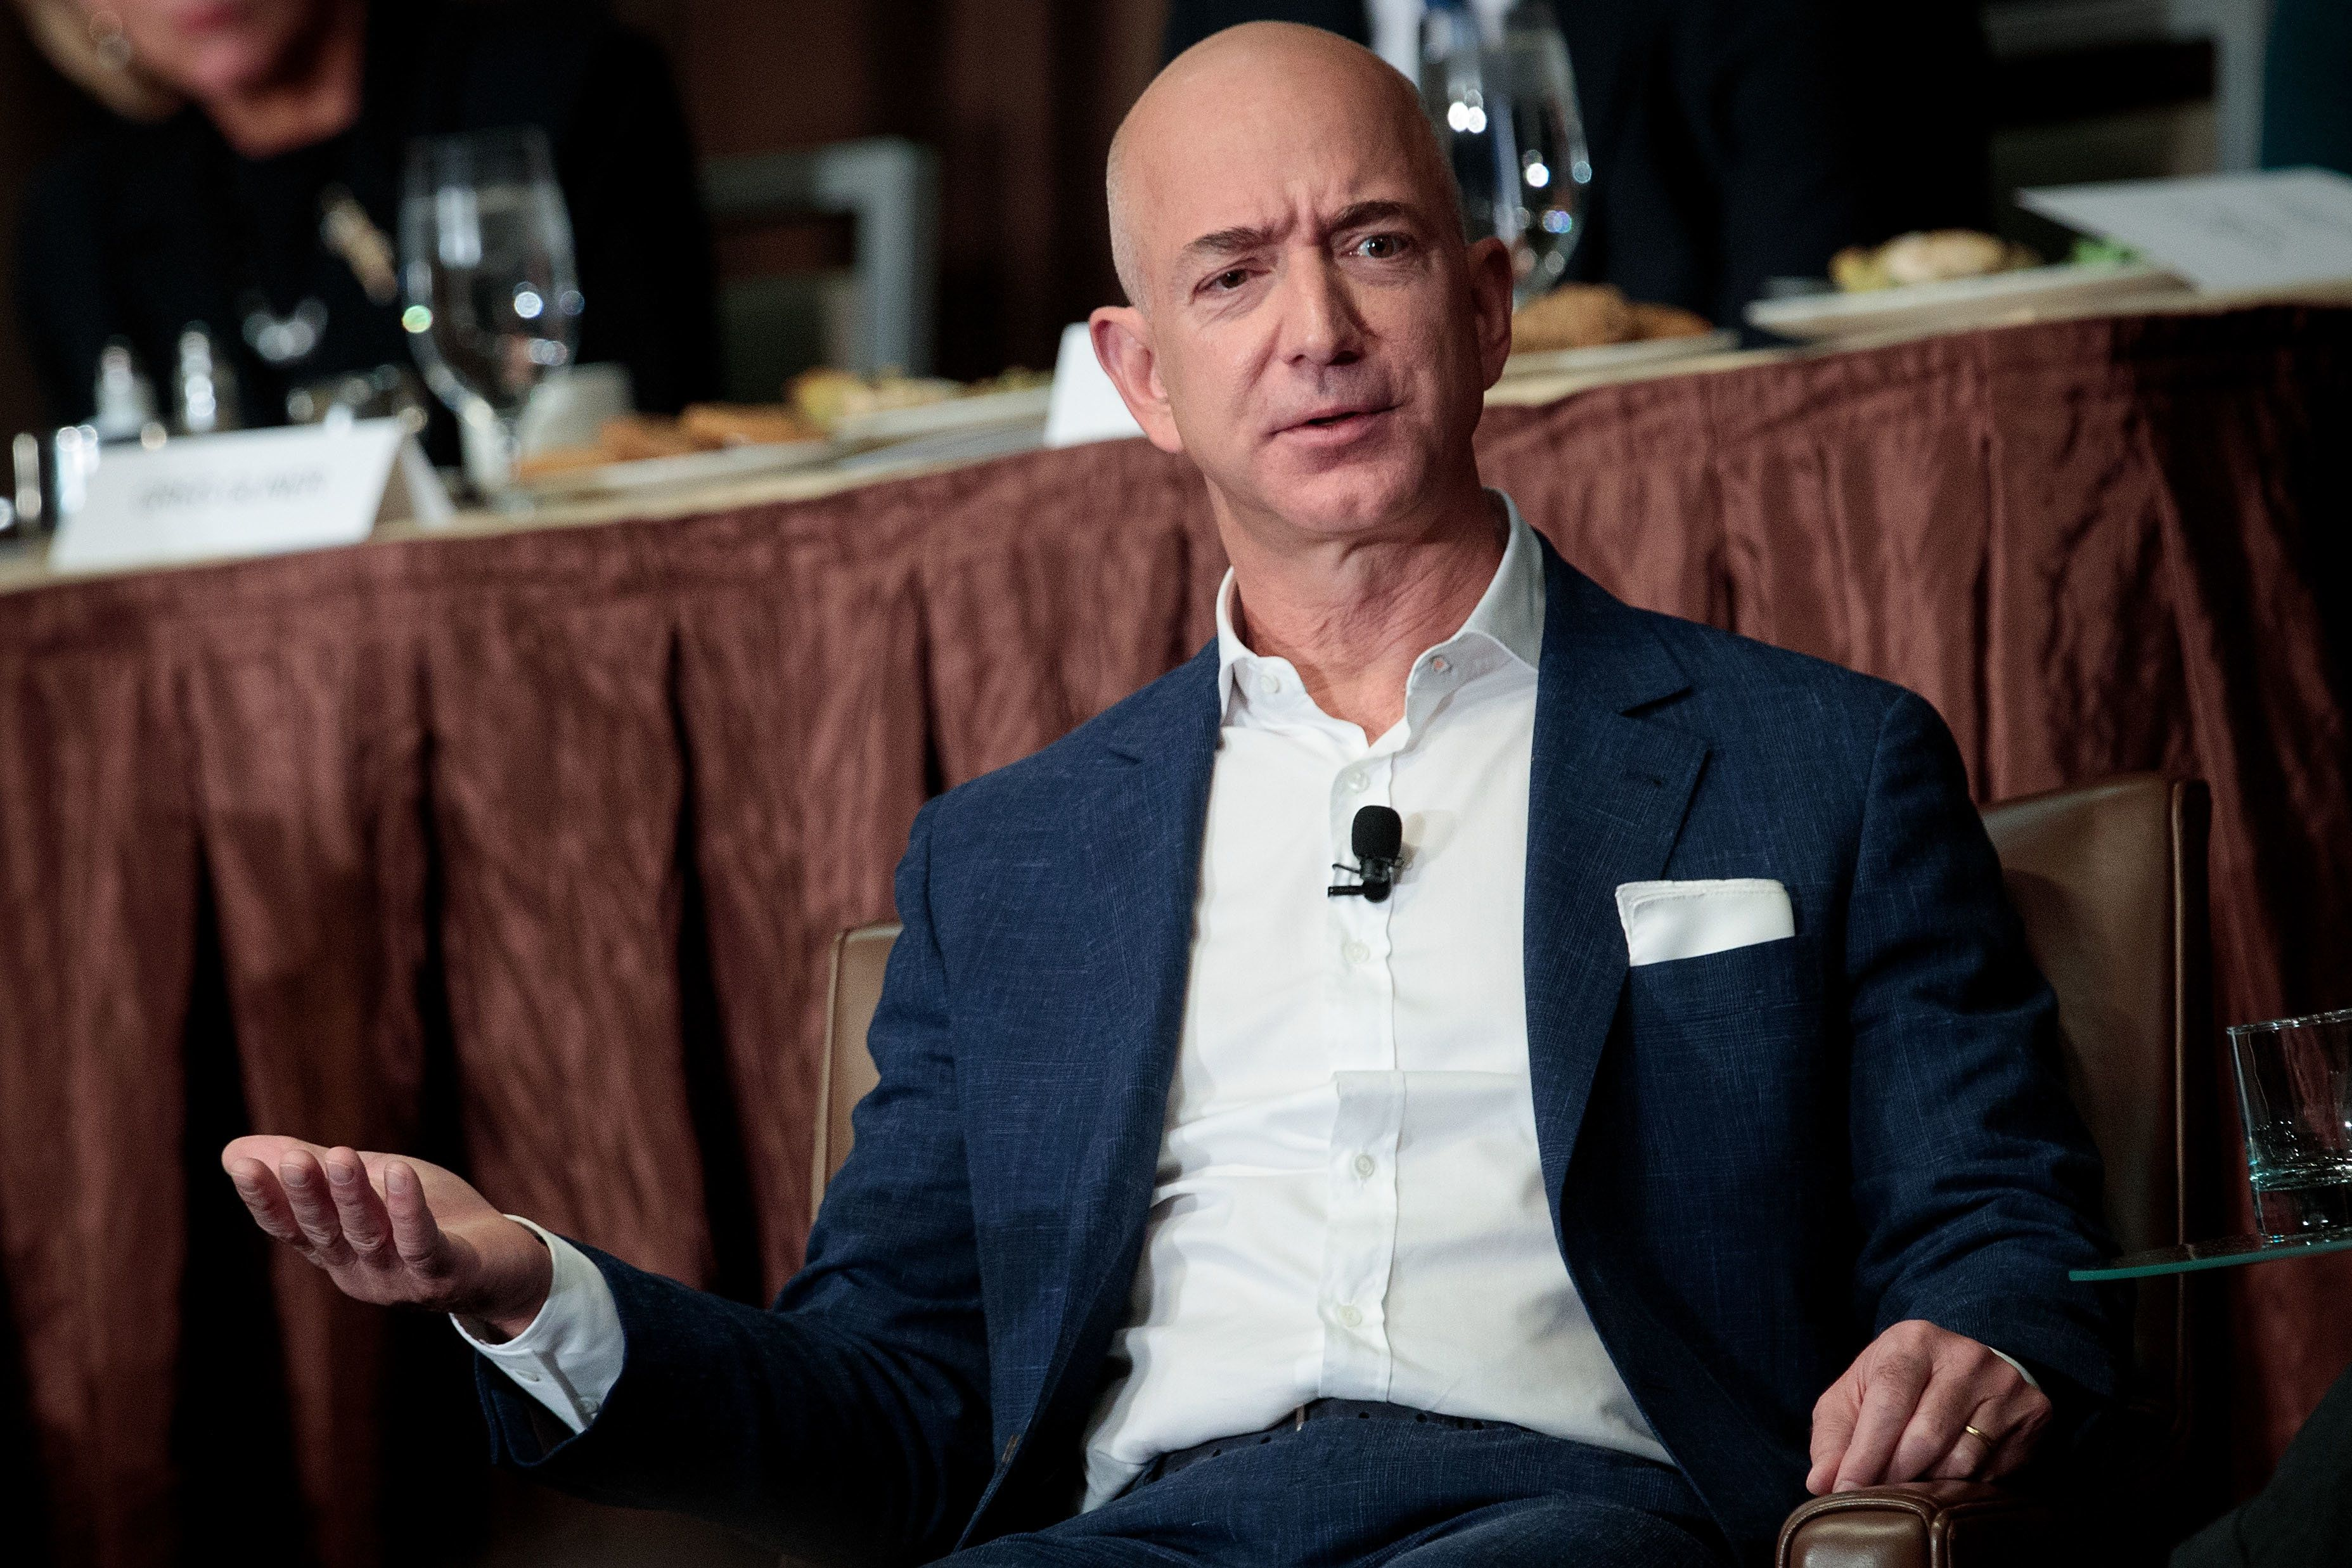 NEW YORK, NY - OCTOBER 27: Jeff Bezos, Chairman and founder of Amazon.com and owner of The Washington Post, addresses the Economic Club of New York, at the Sheraton New York Times Square Hotel, October 27, 2016 in New York City. Bezos discussed the future of Amazon, space travel, and his ownership of The Washington Post. (Photo by Drew Angerer/Getty Images)